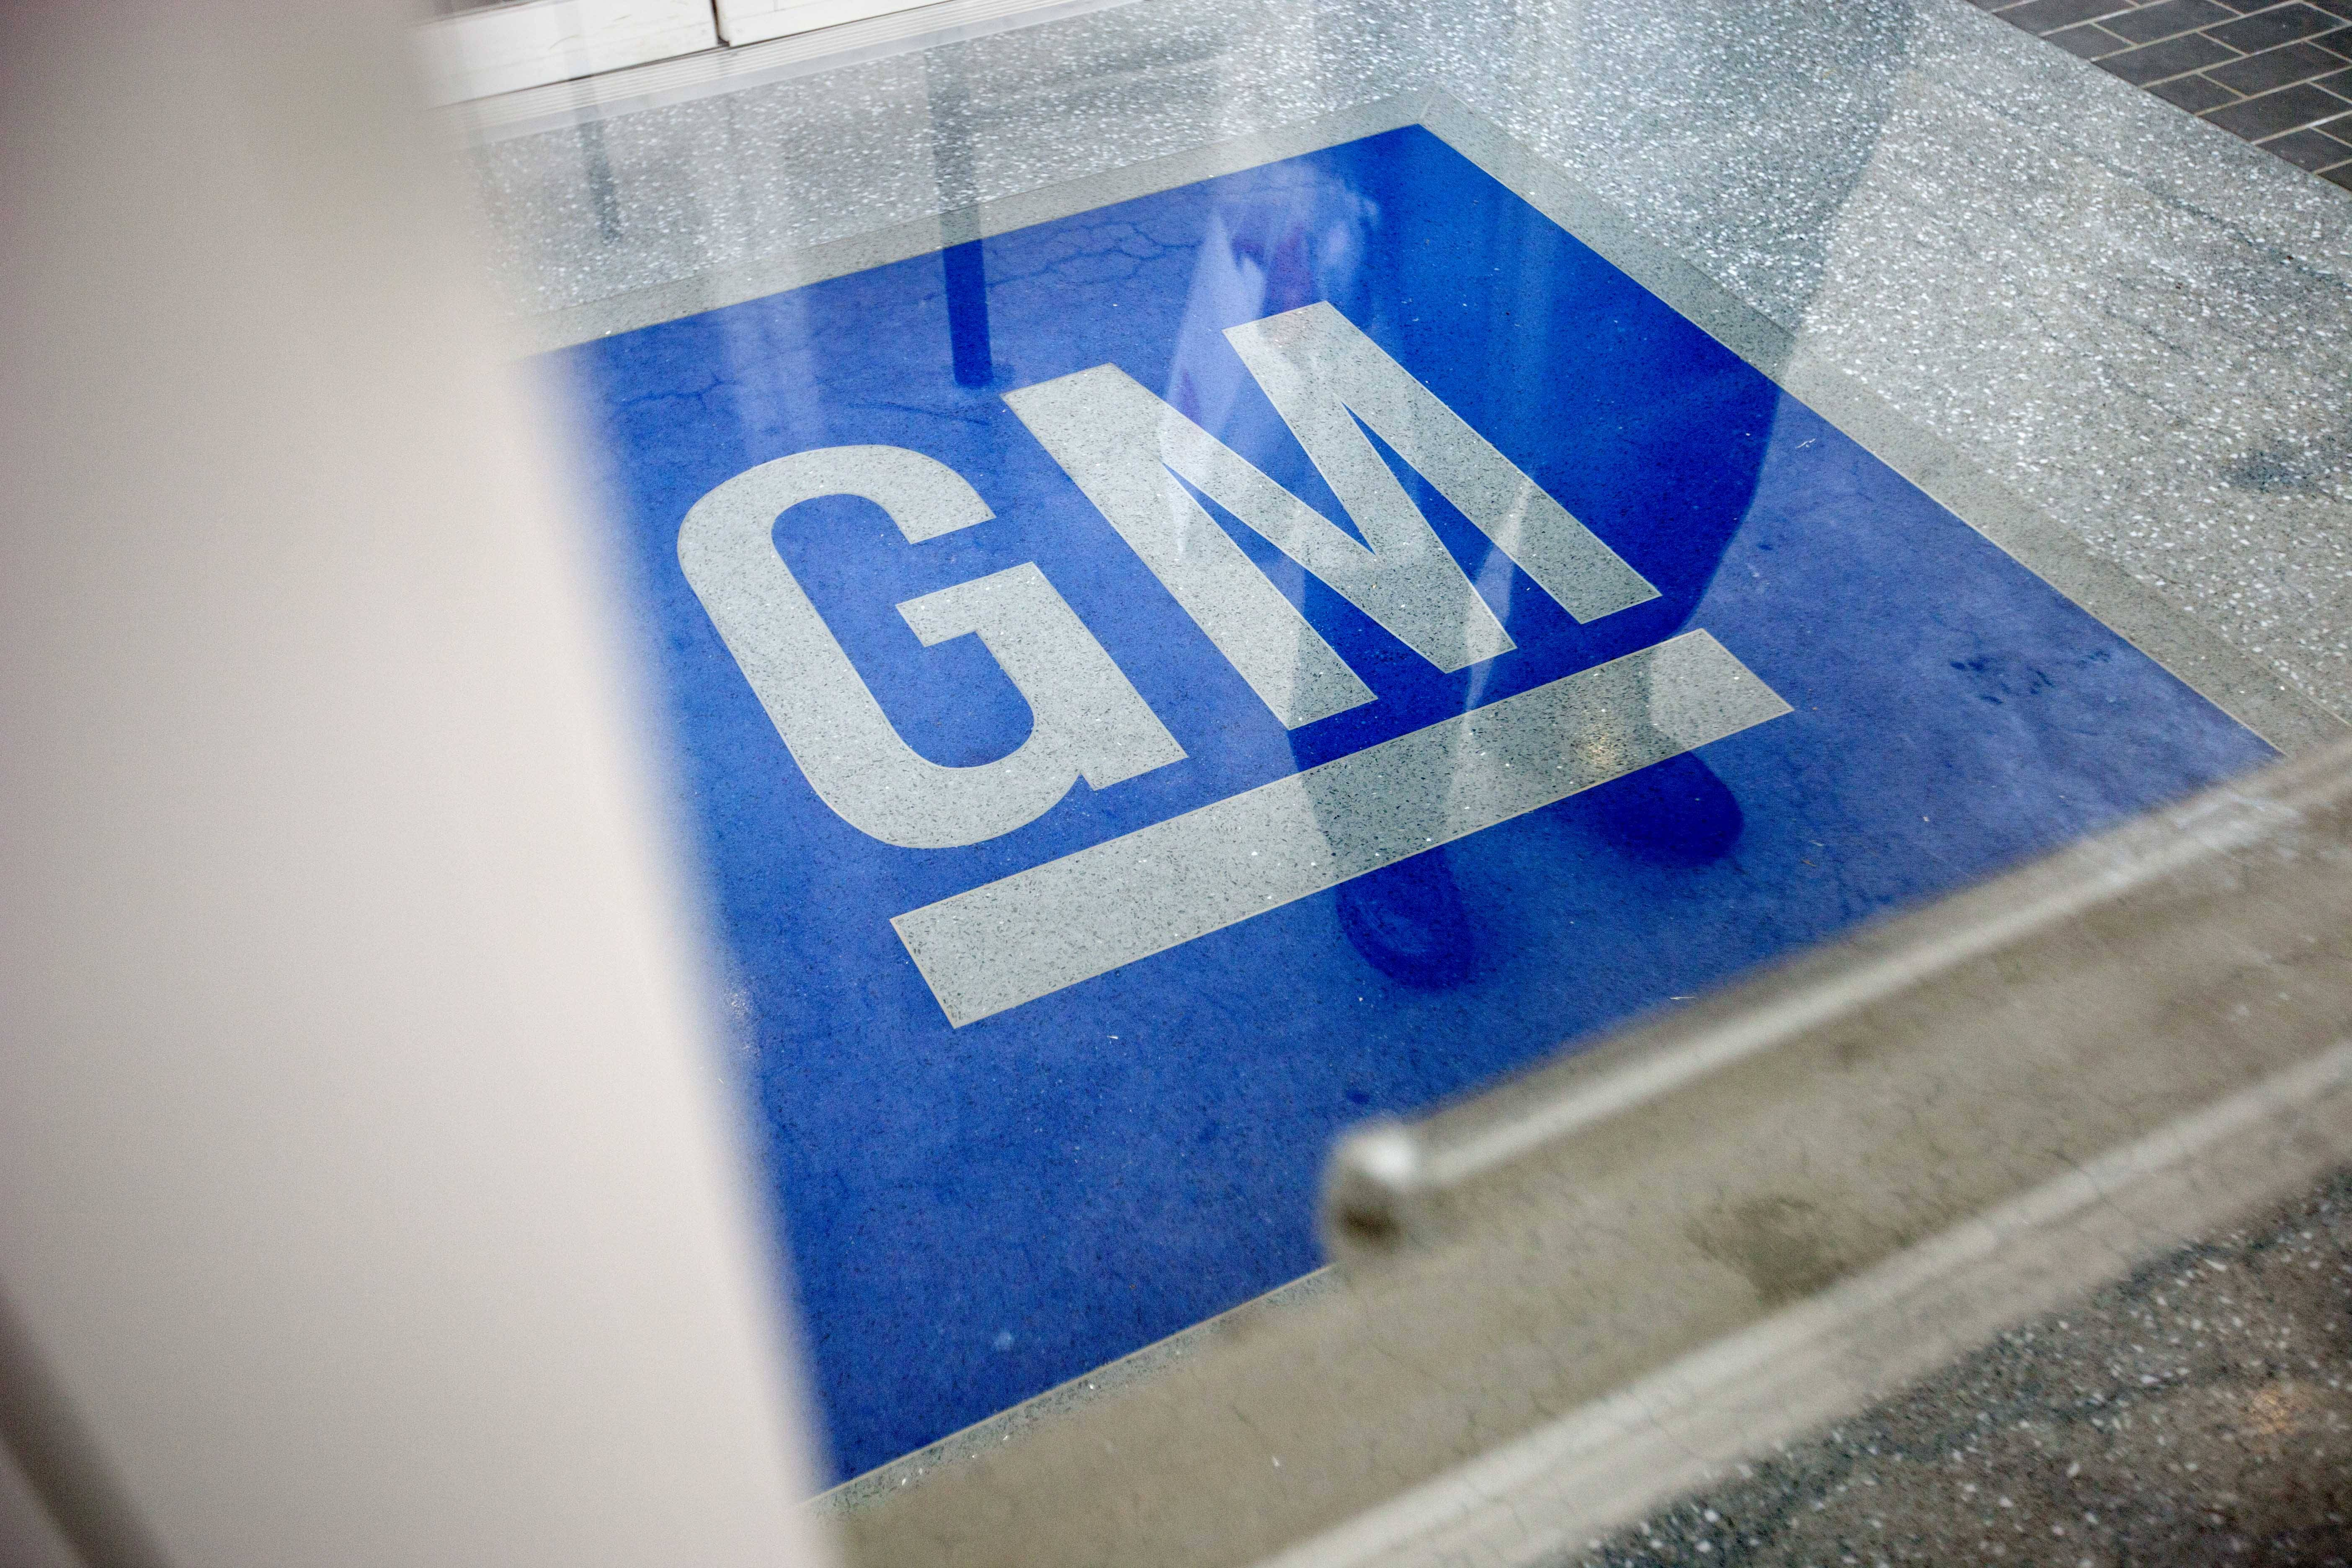 Nine million parts. That's what General Motors needs to repair millions of cars it has recalled since Feb. 7.